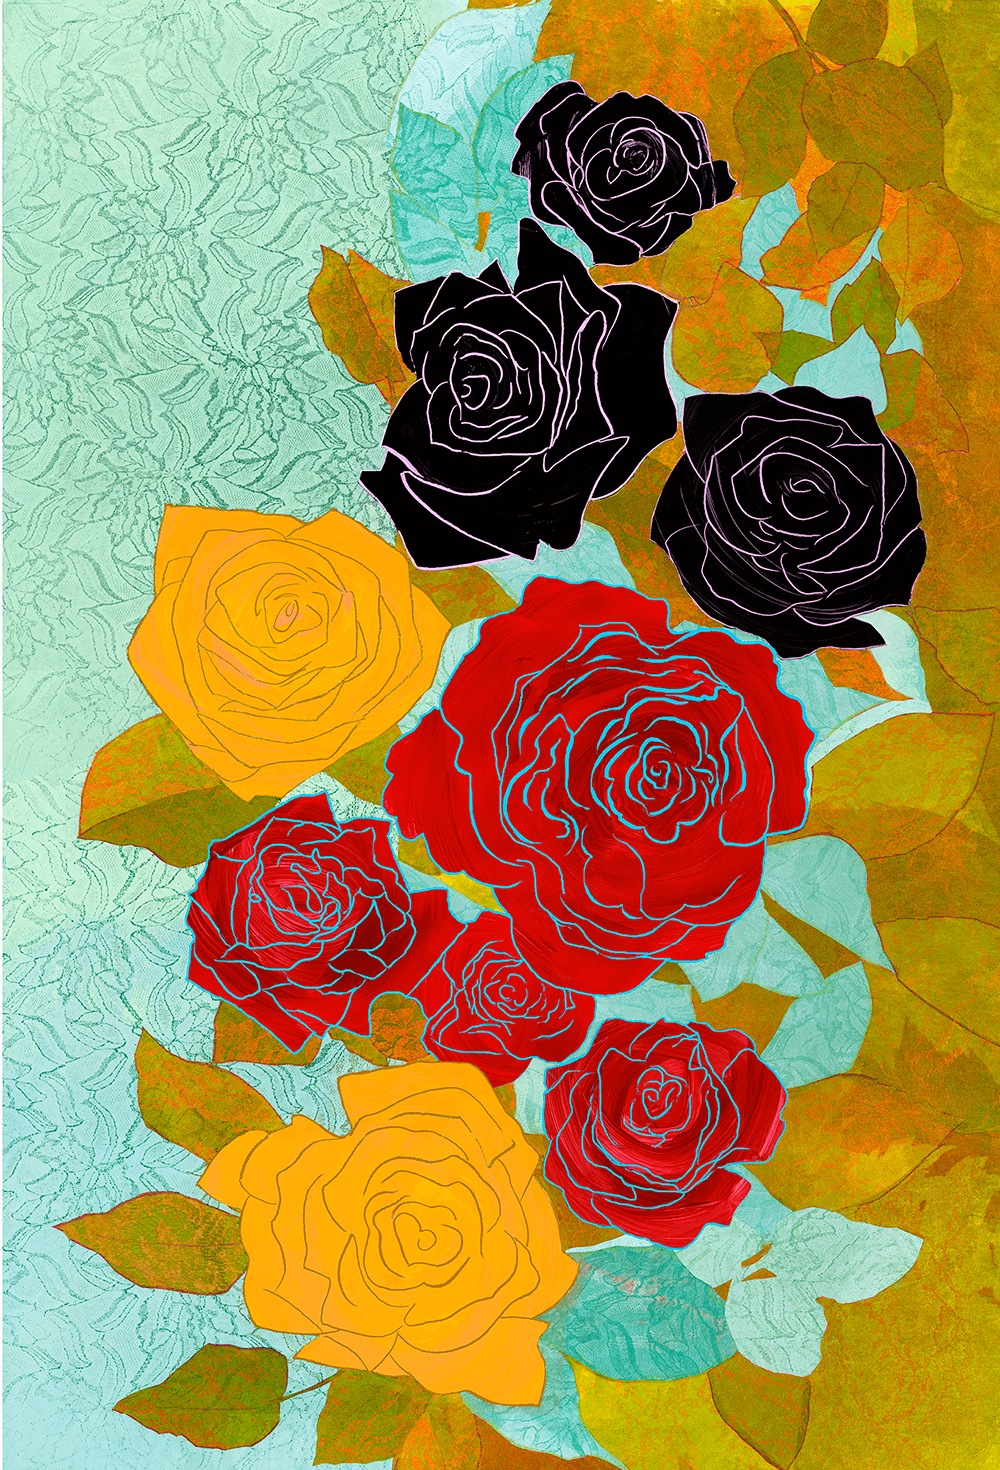 9 Roses 26 x 38 inches